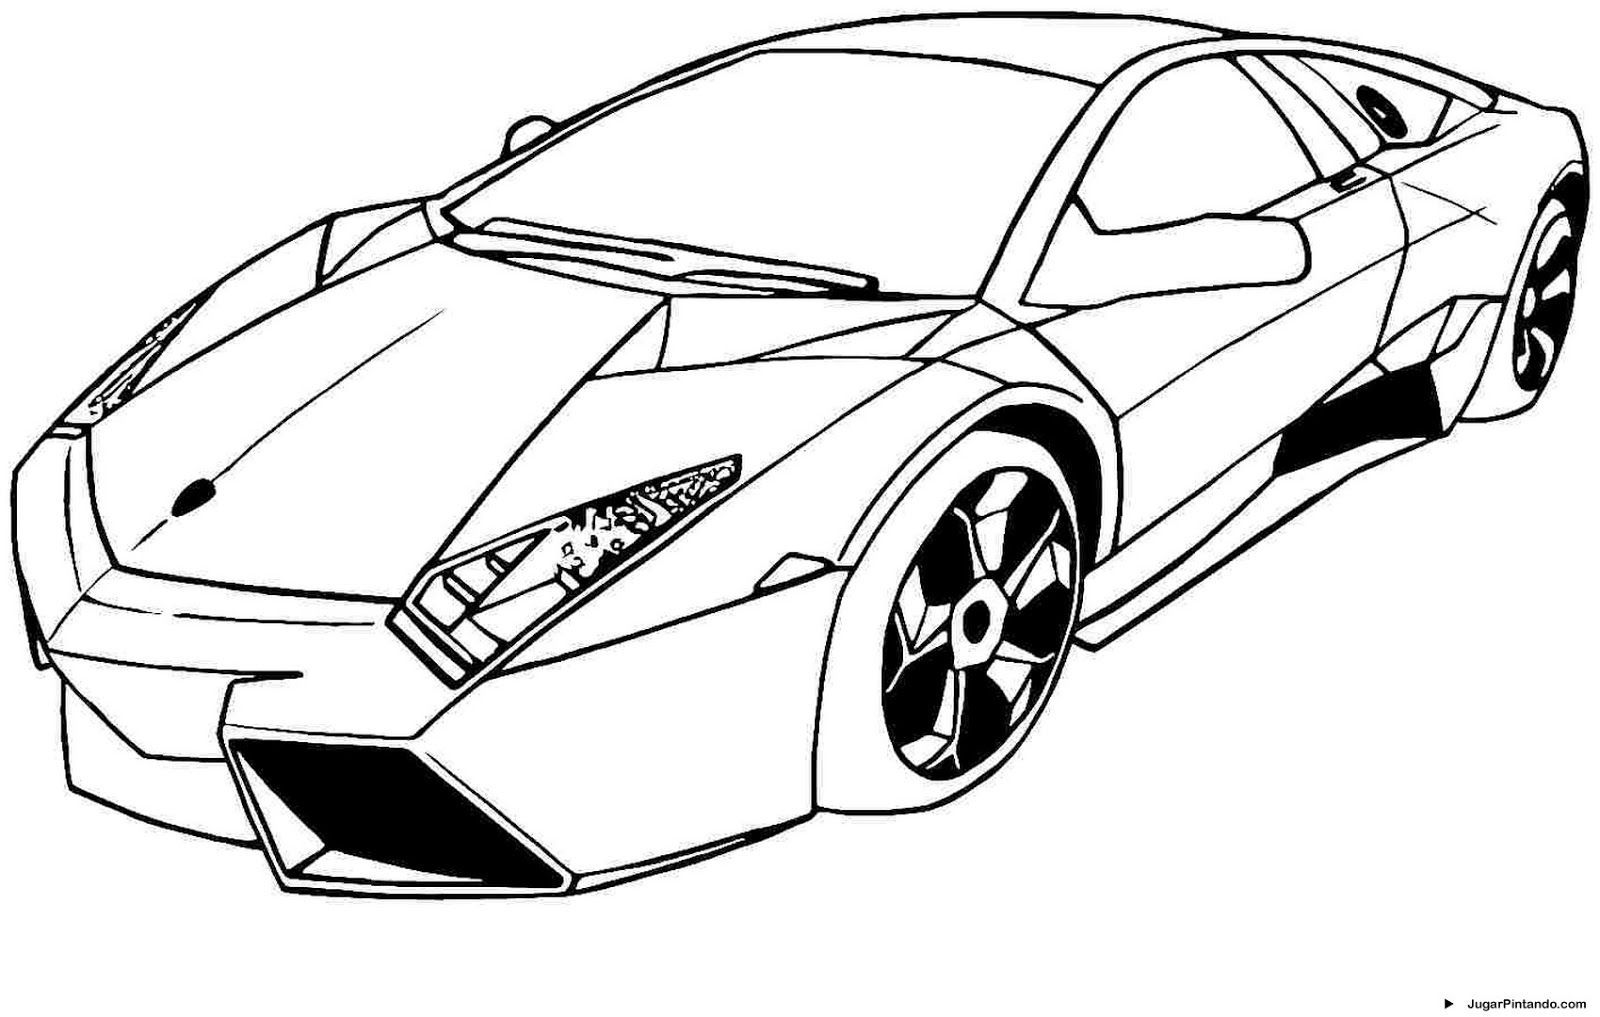 Pin By Aniko On Kifesto Cars Coloring Pages Race Car Coloring Pages Sports Coloring Pages